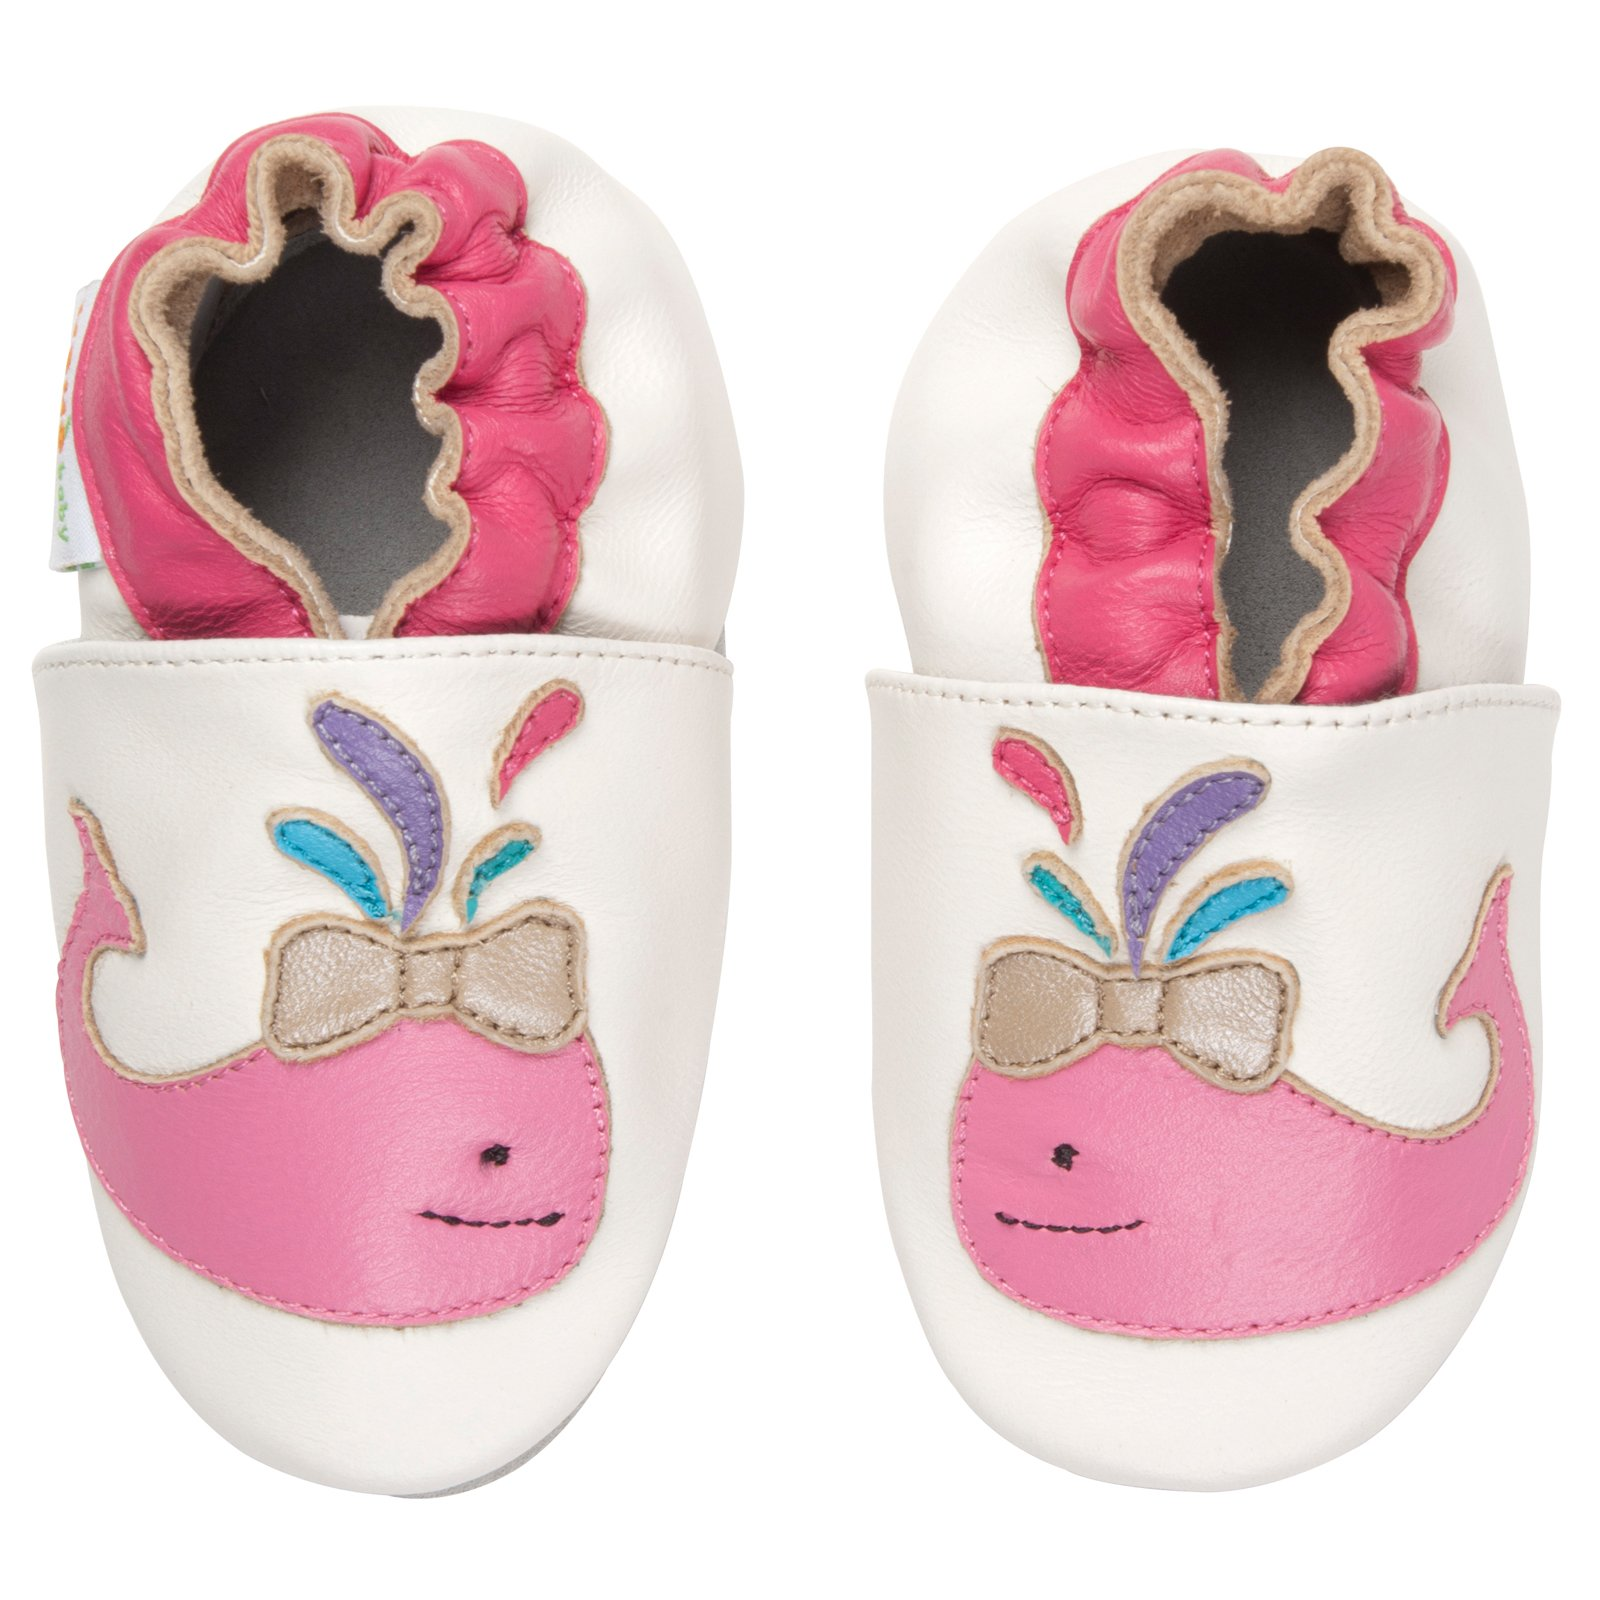 Momo Baby Girls Soft Sole Leather Crib Bootie Shoes - 6-12 Months/3-4 M US Toddler by Momo Baby (Image #1)